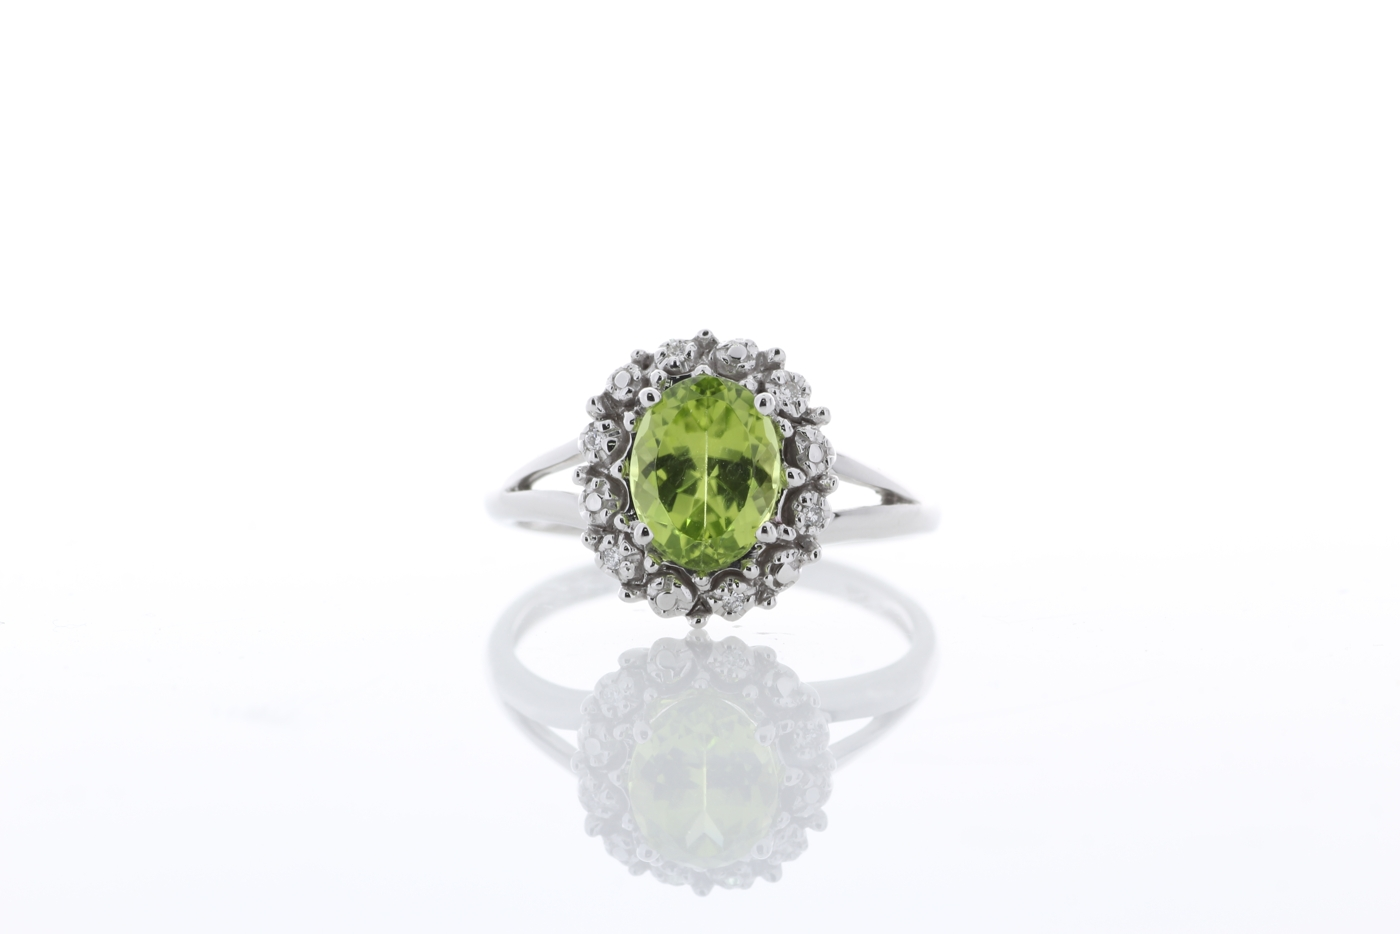 Lot 59 - 9ct White Gold Cluster Diamond And Peridot Ring 1.40 Carats